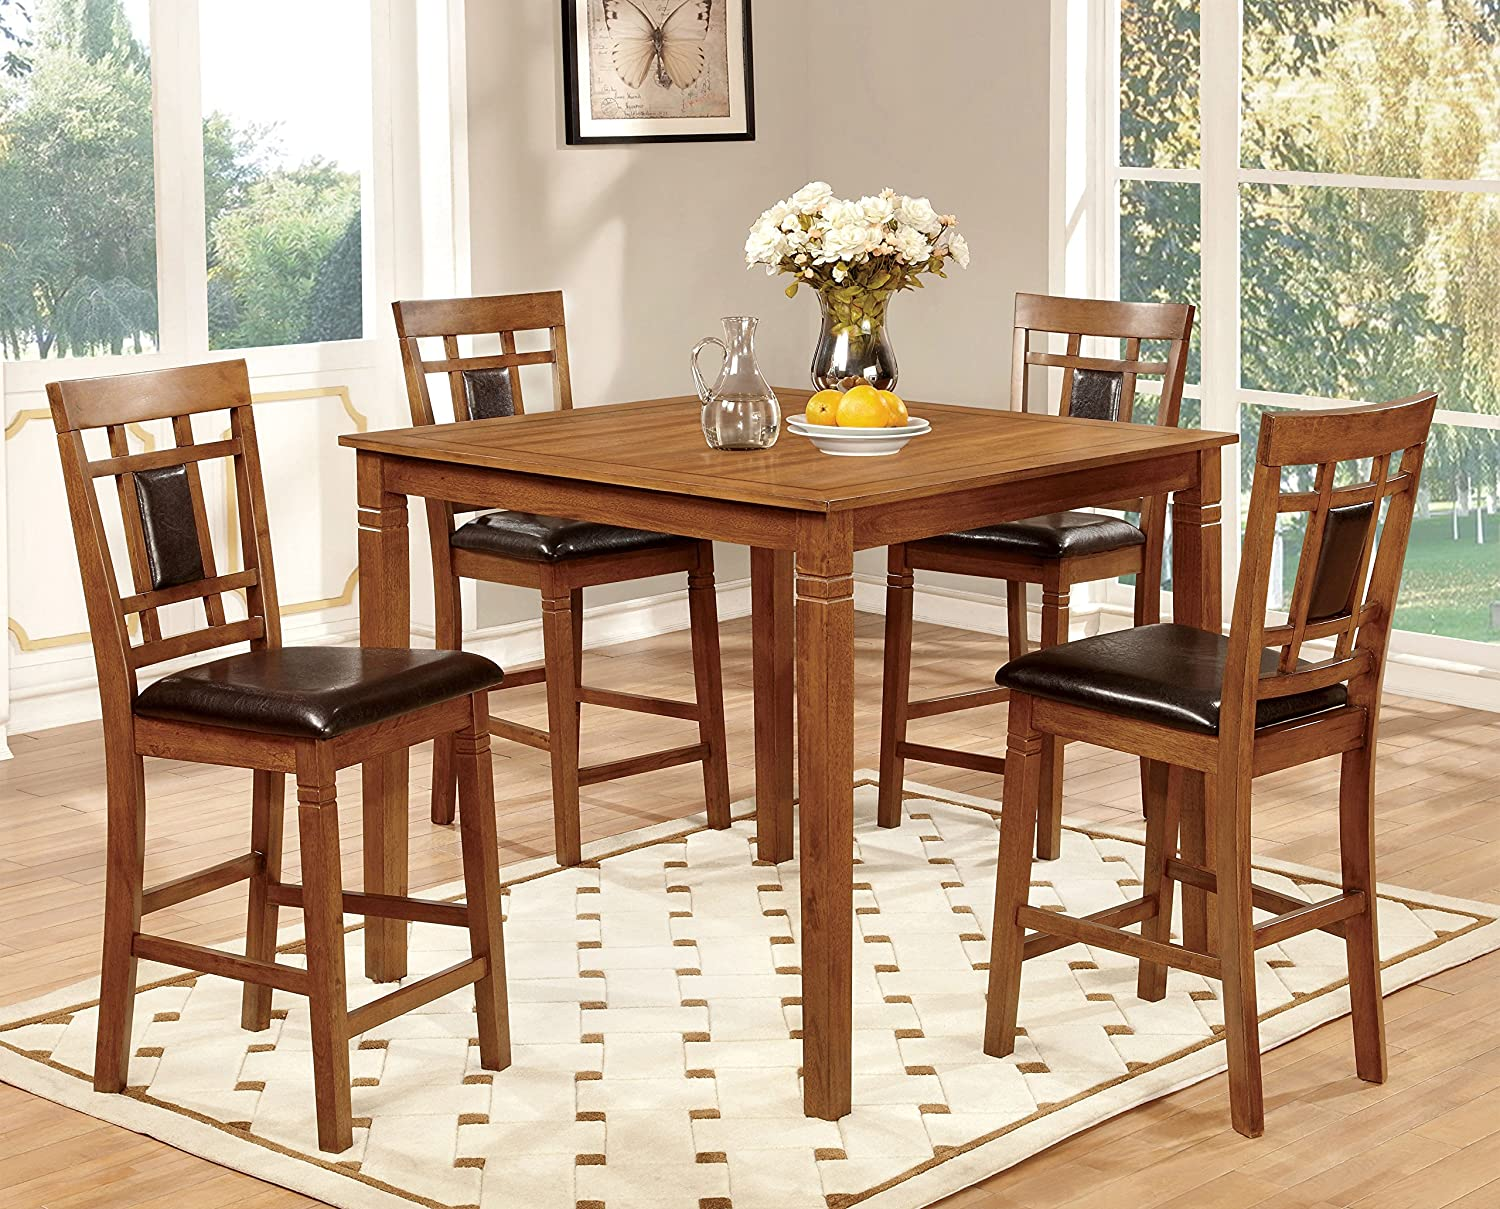 amazoncom furniture of america lazio 5piece pub dining set light oak table u0026 chair sets